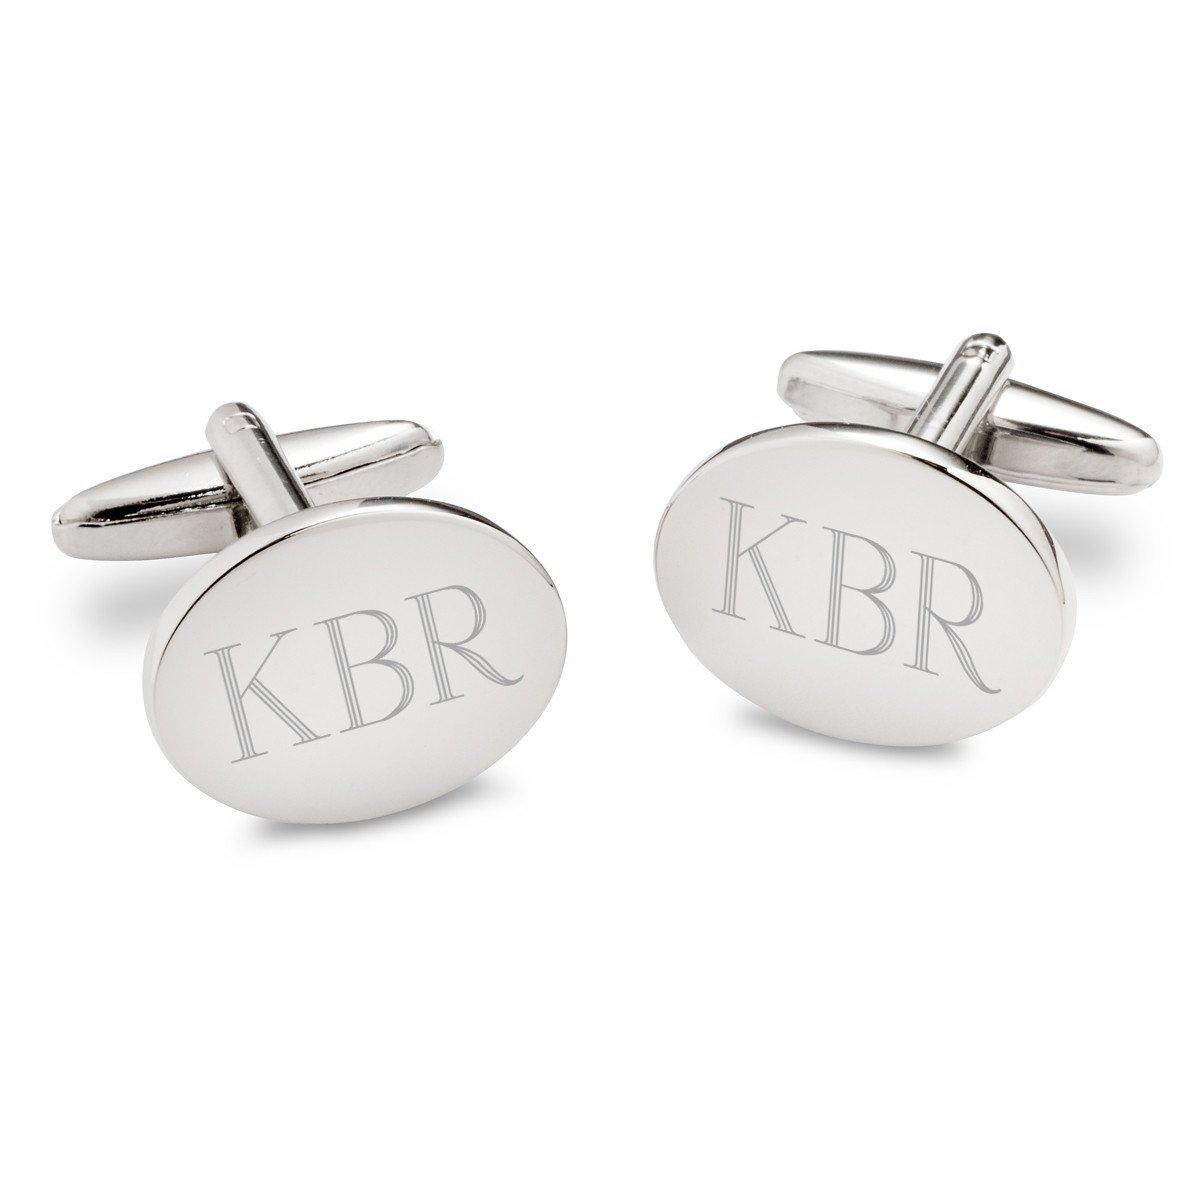 Personalized-Modern-Oval-Cufflinks